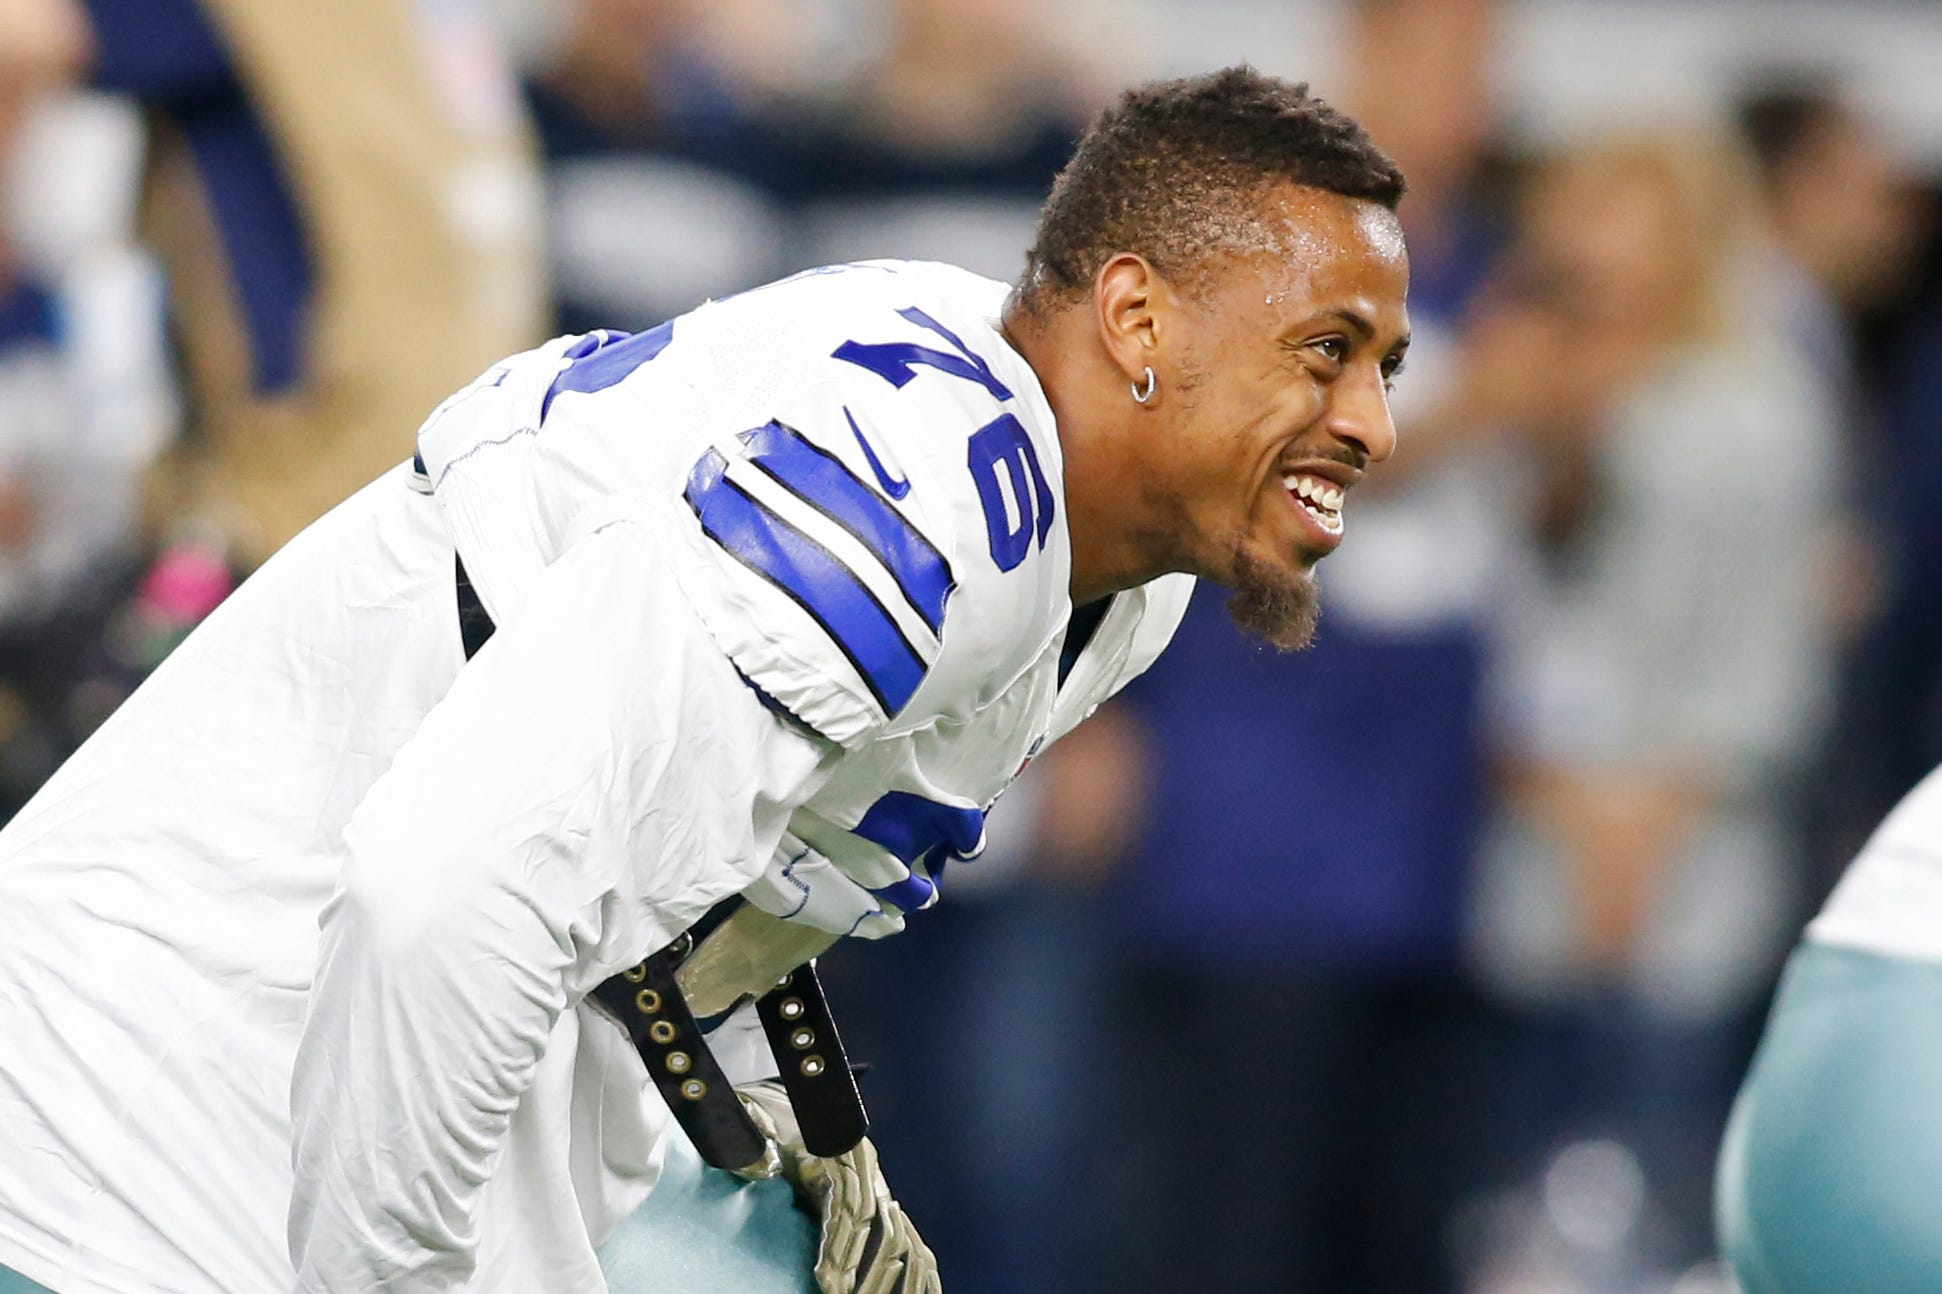 Ufc On Espn 1 Greg Hardy Ex Nfl Player Aims To Be Top Heavyweight Sign in and start exploring all the free, organizational tools for your email. greg hardy ex nfl player